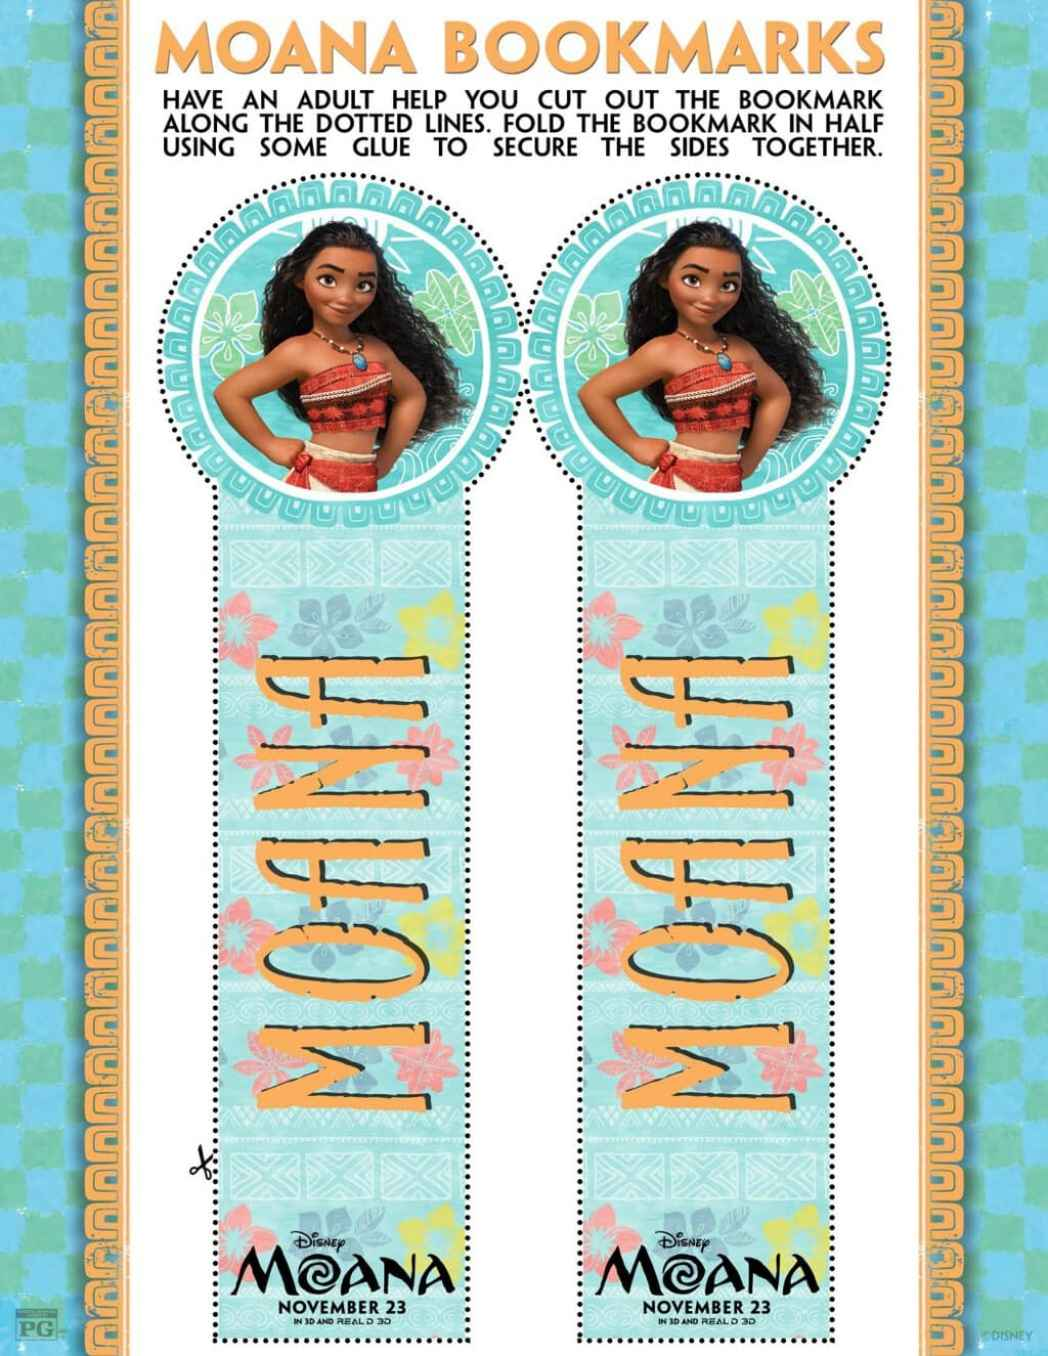 Moana Bookmarks